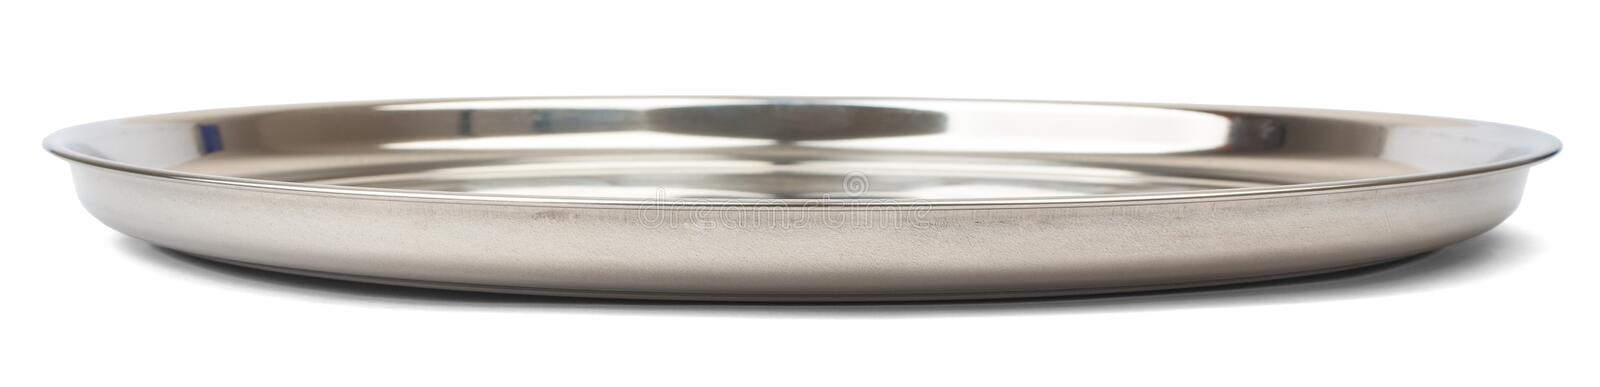 Round steel tray. Isolated on white background, side view stock images